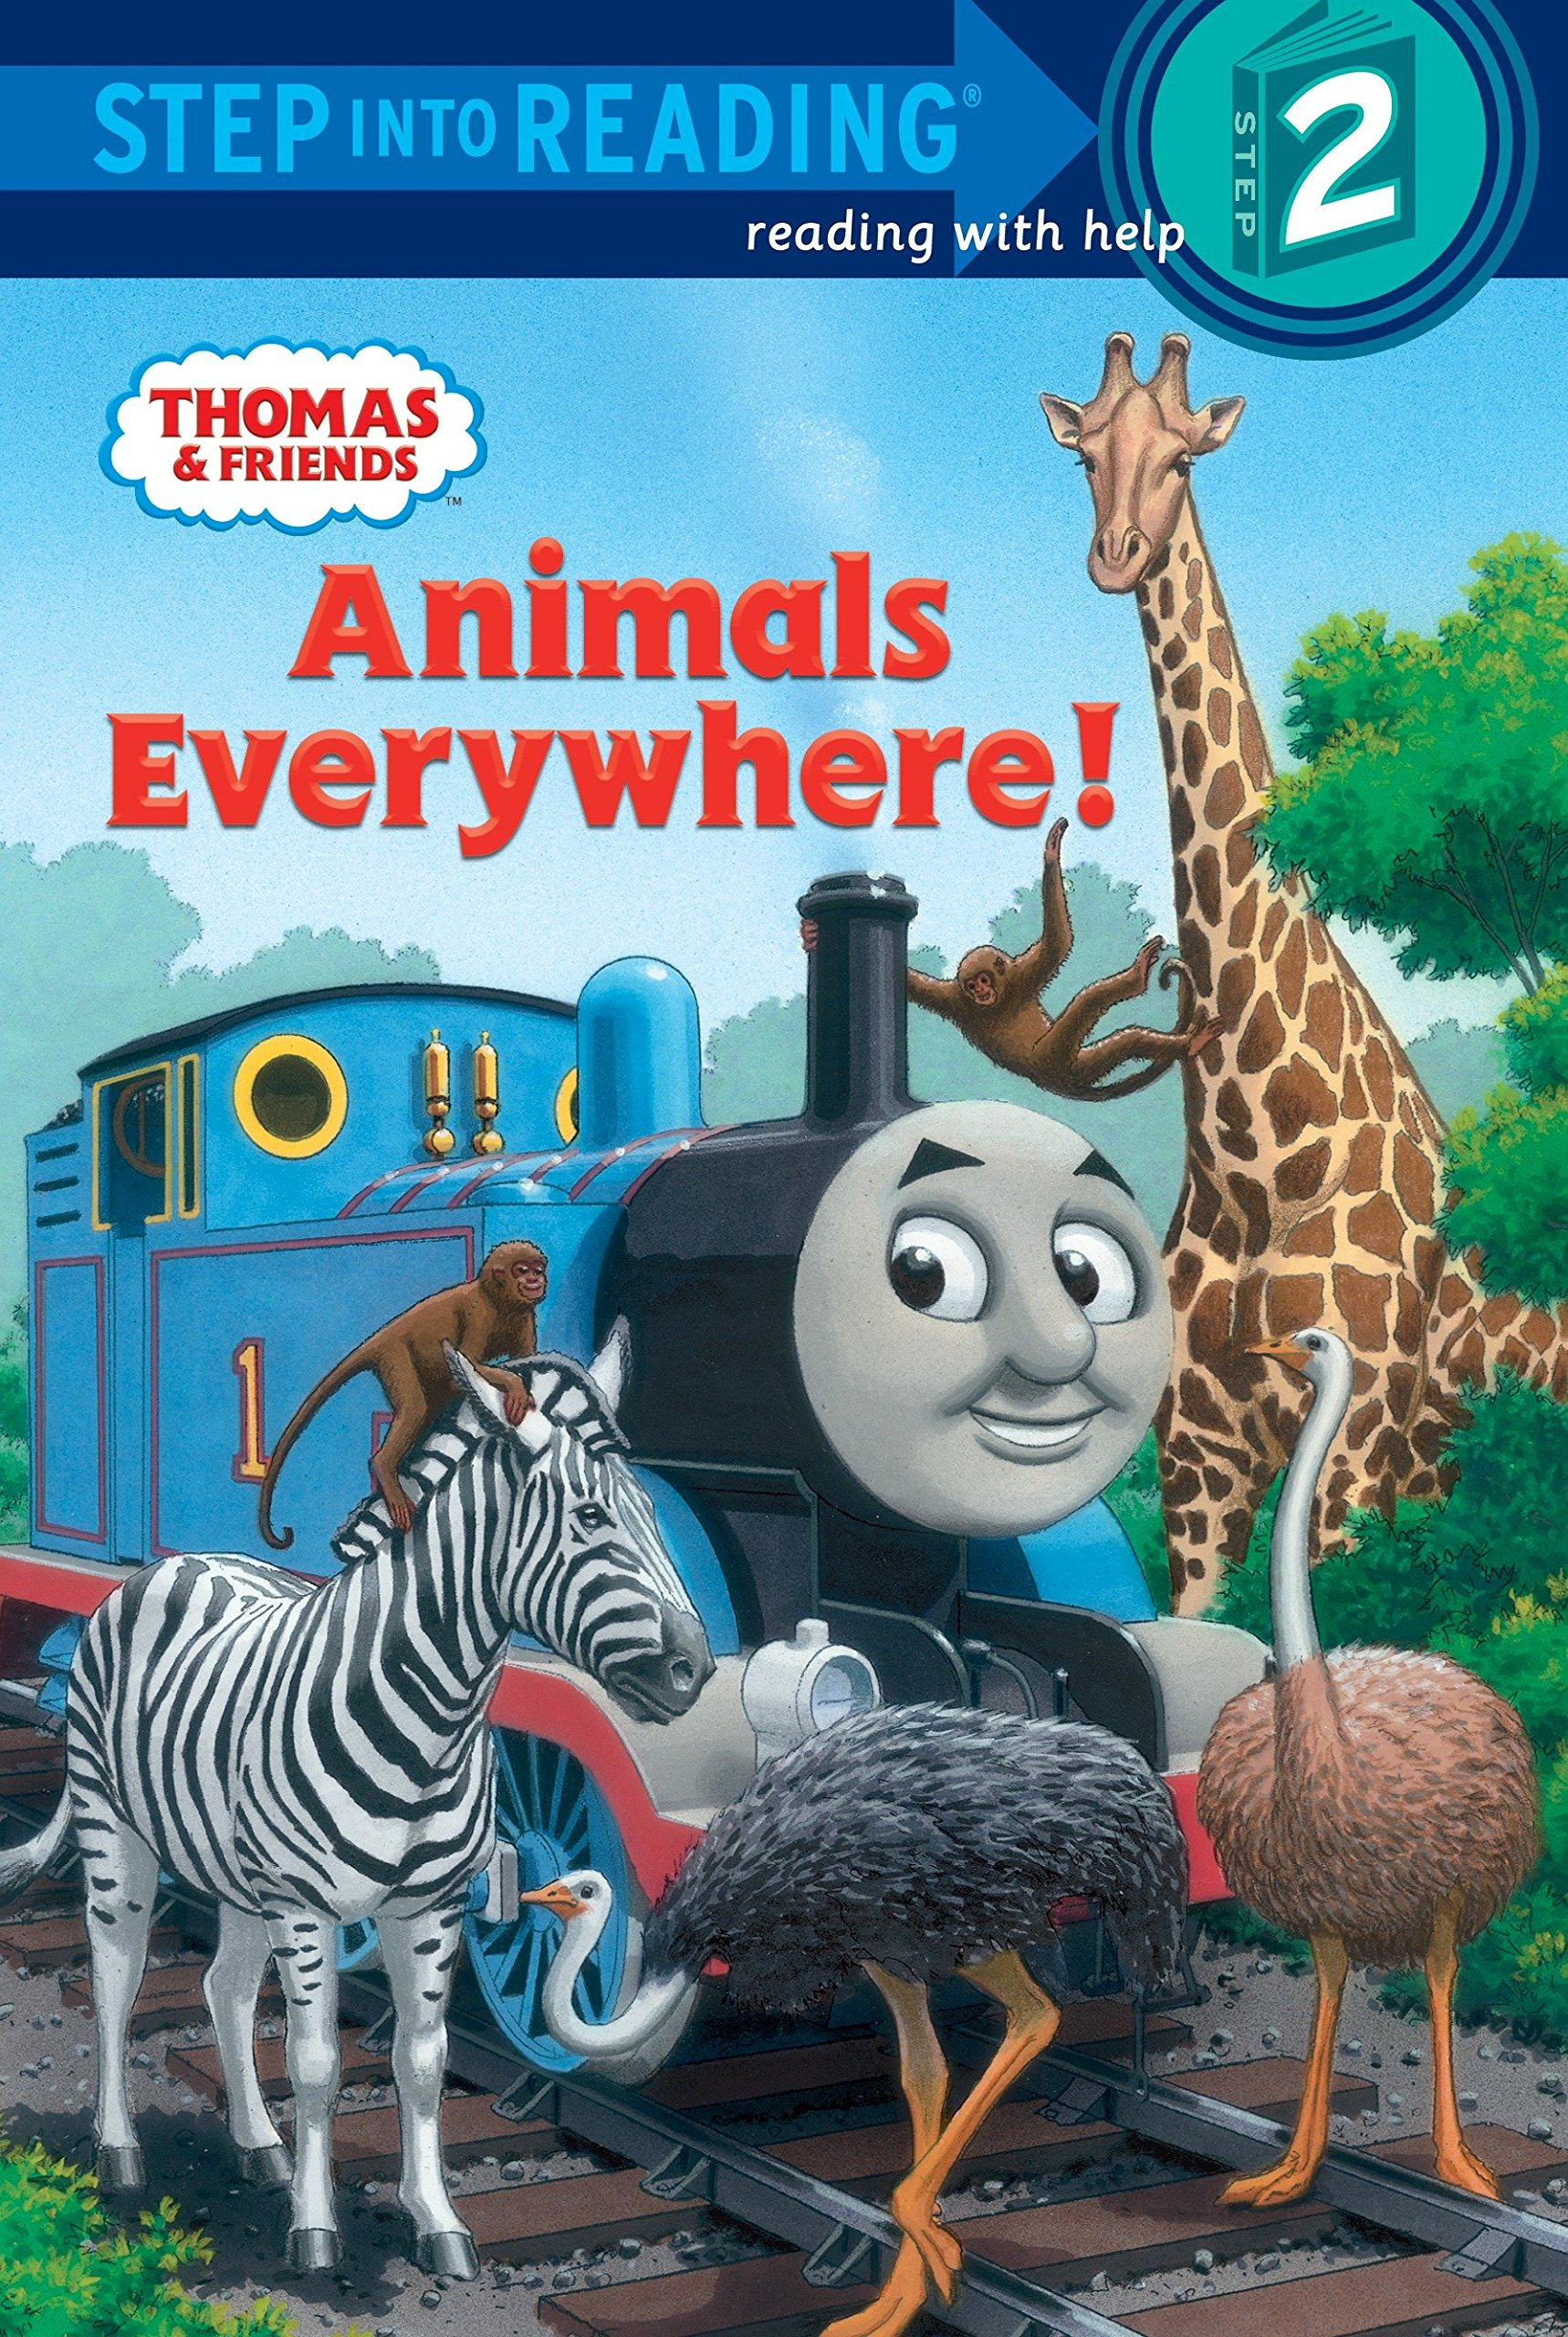 amazon animals everywhere thomas friends step into reading